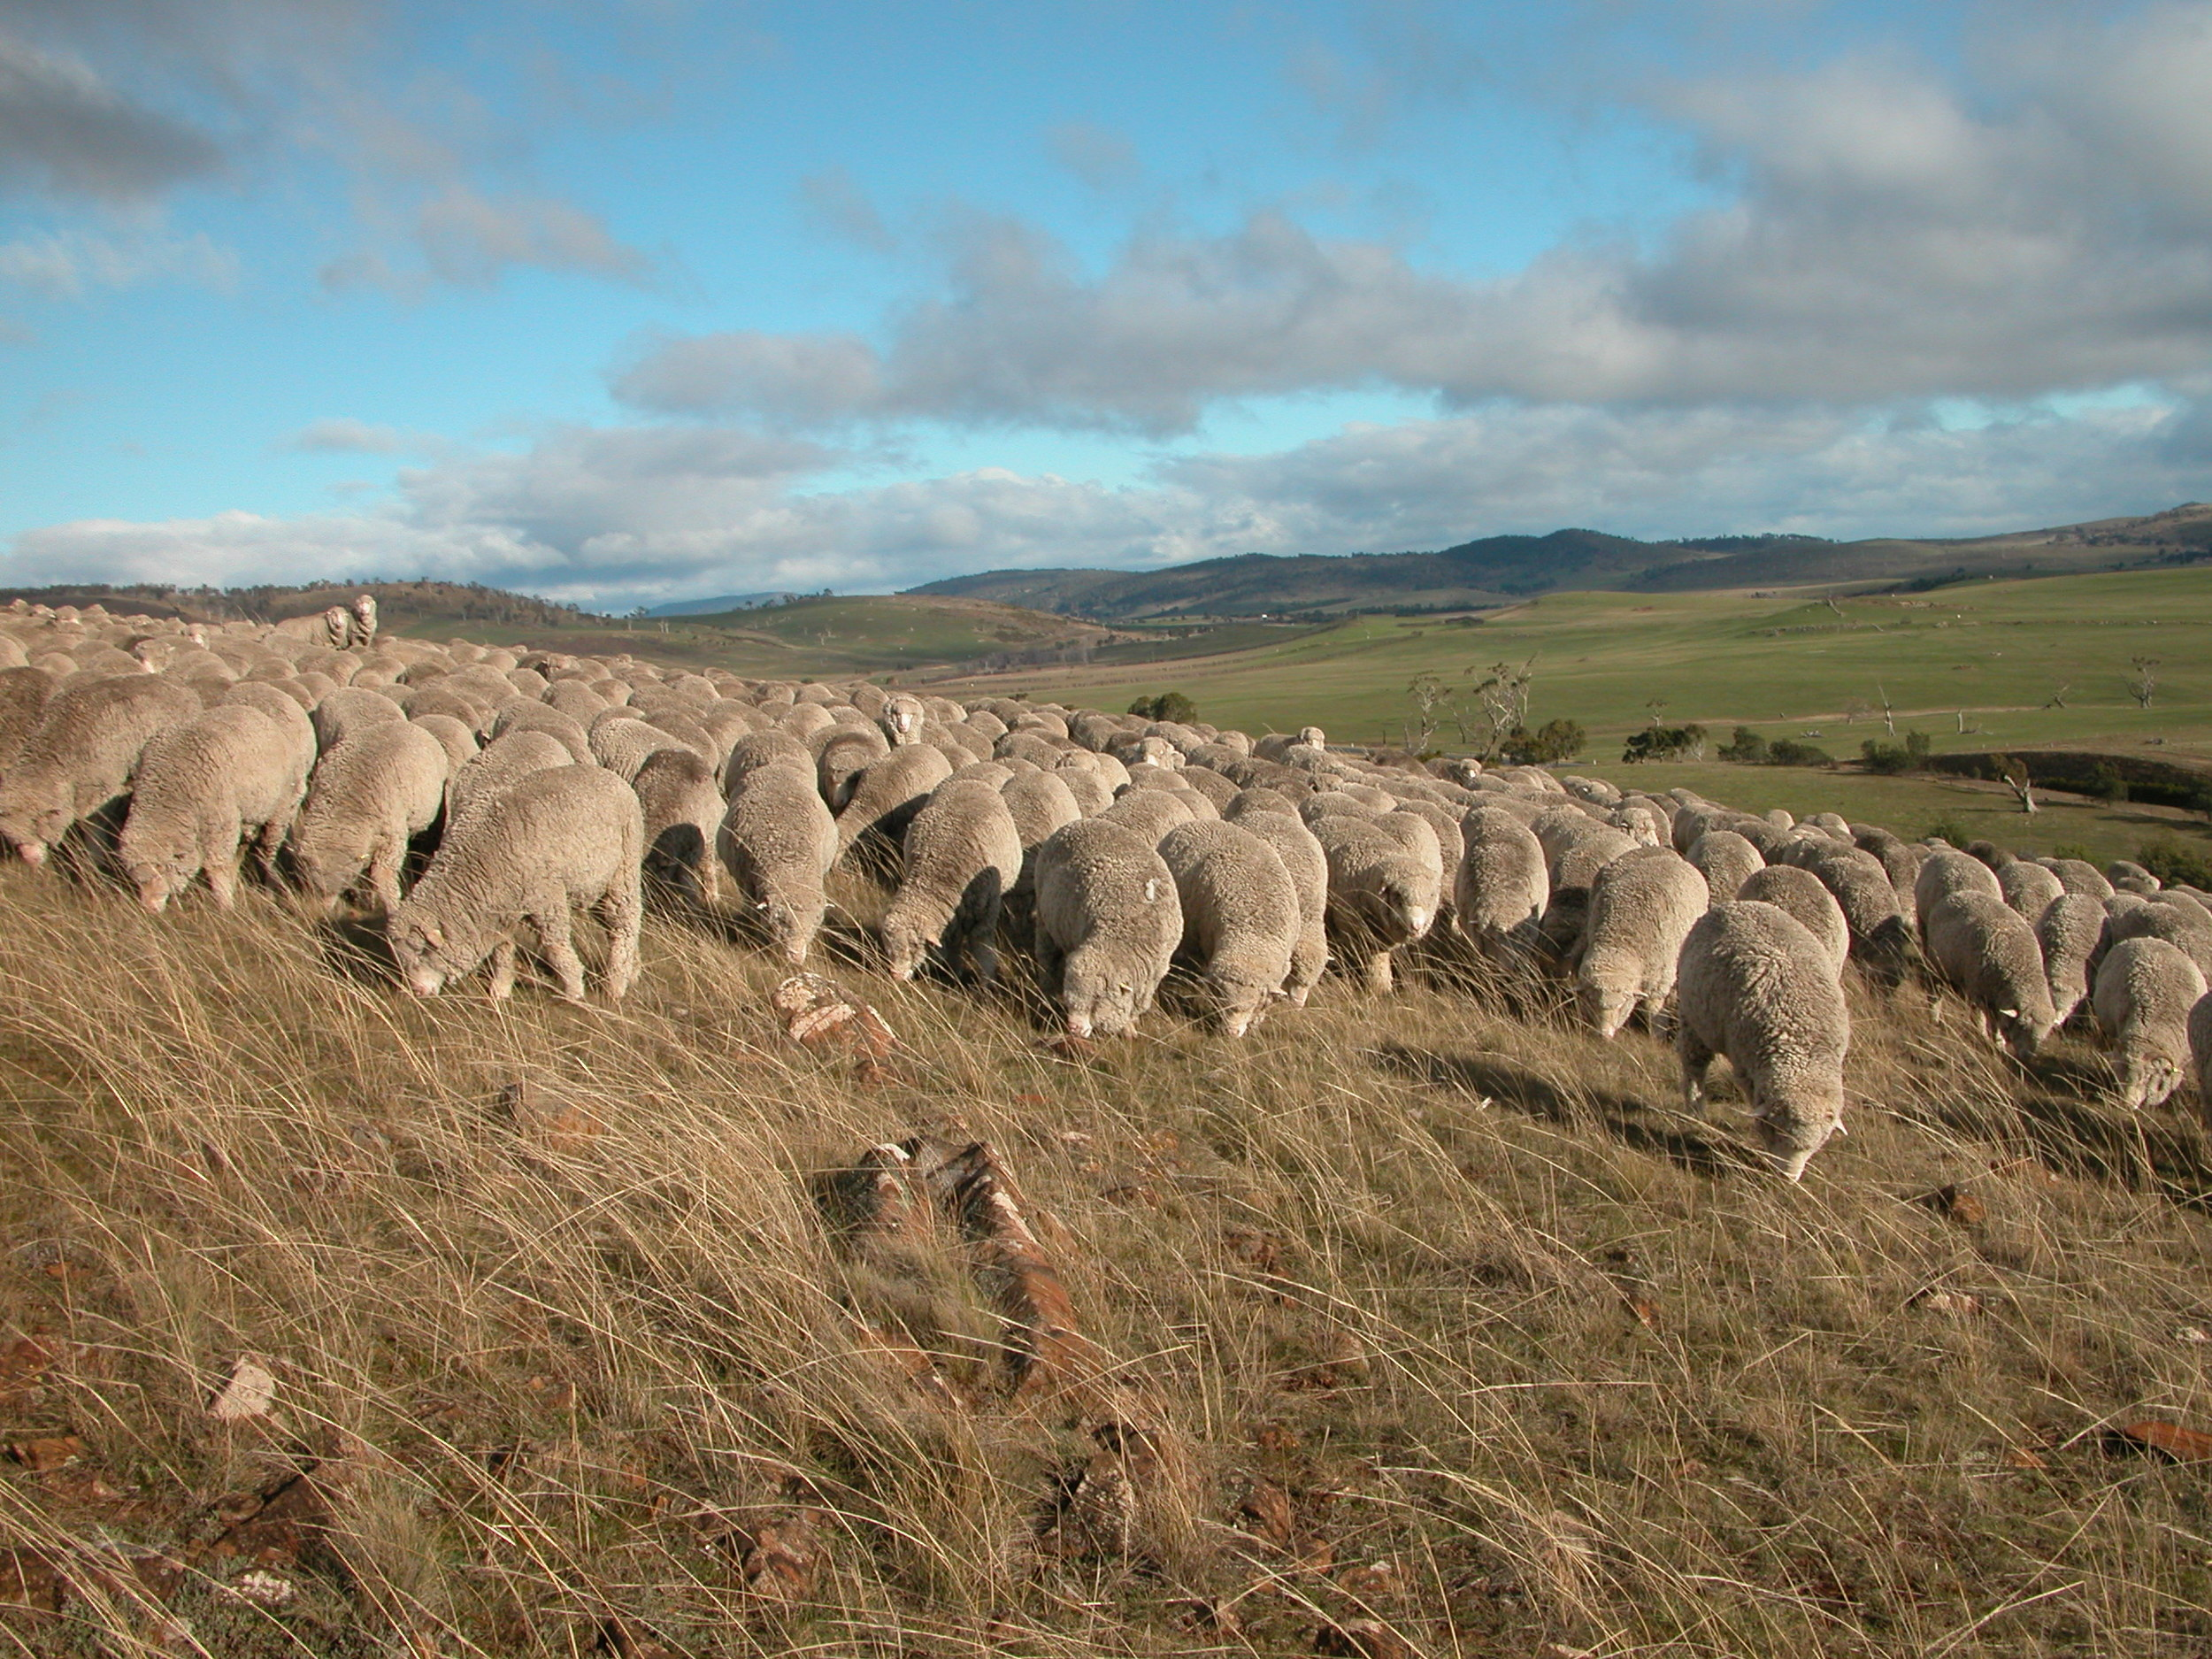 Grazing across a hillside of predominantly native grasses, coarse and fairly dry, but still popular.